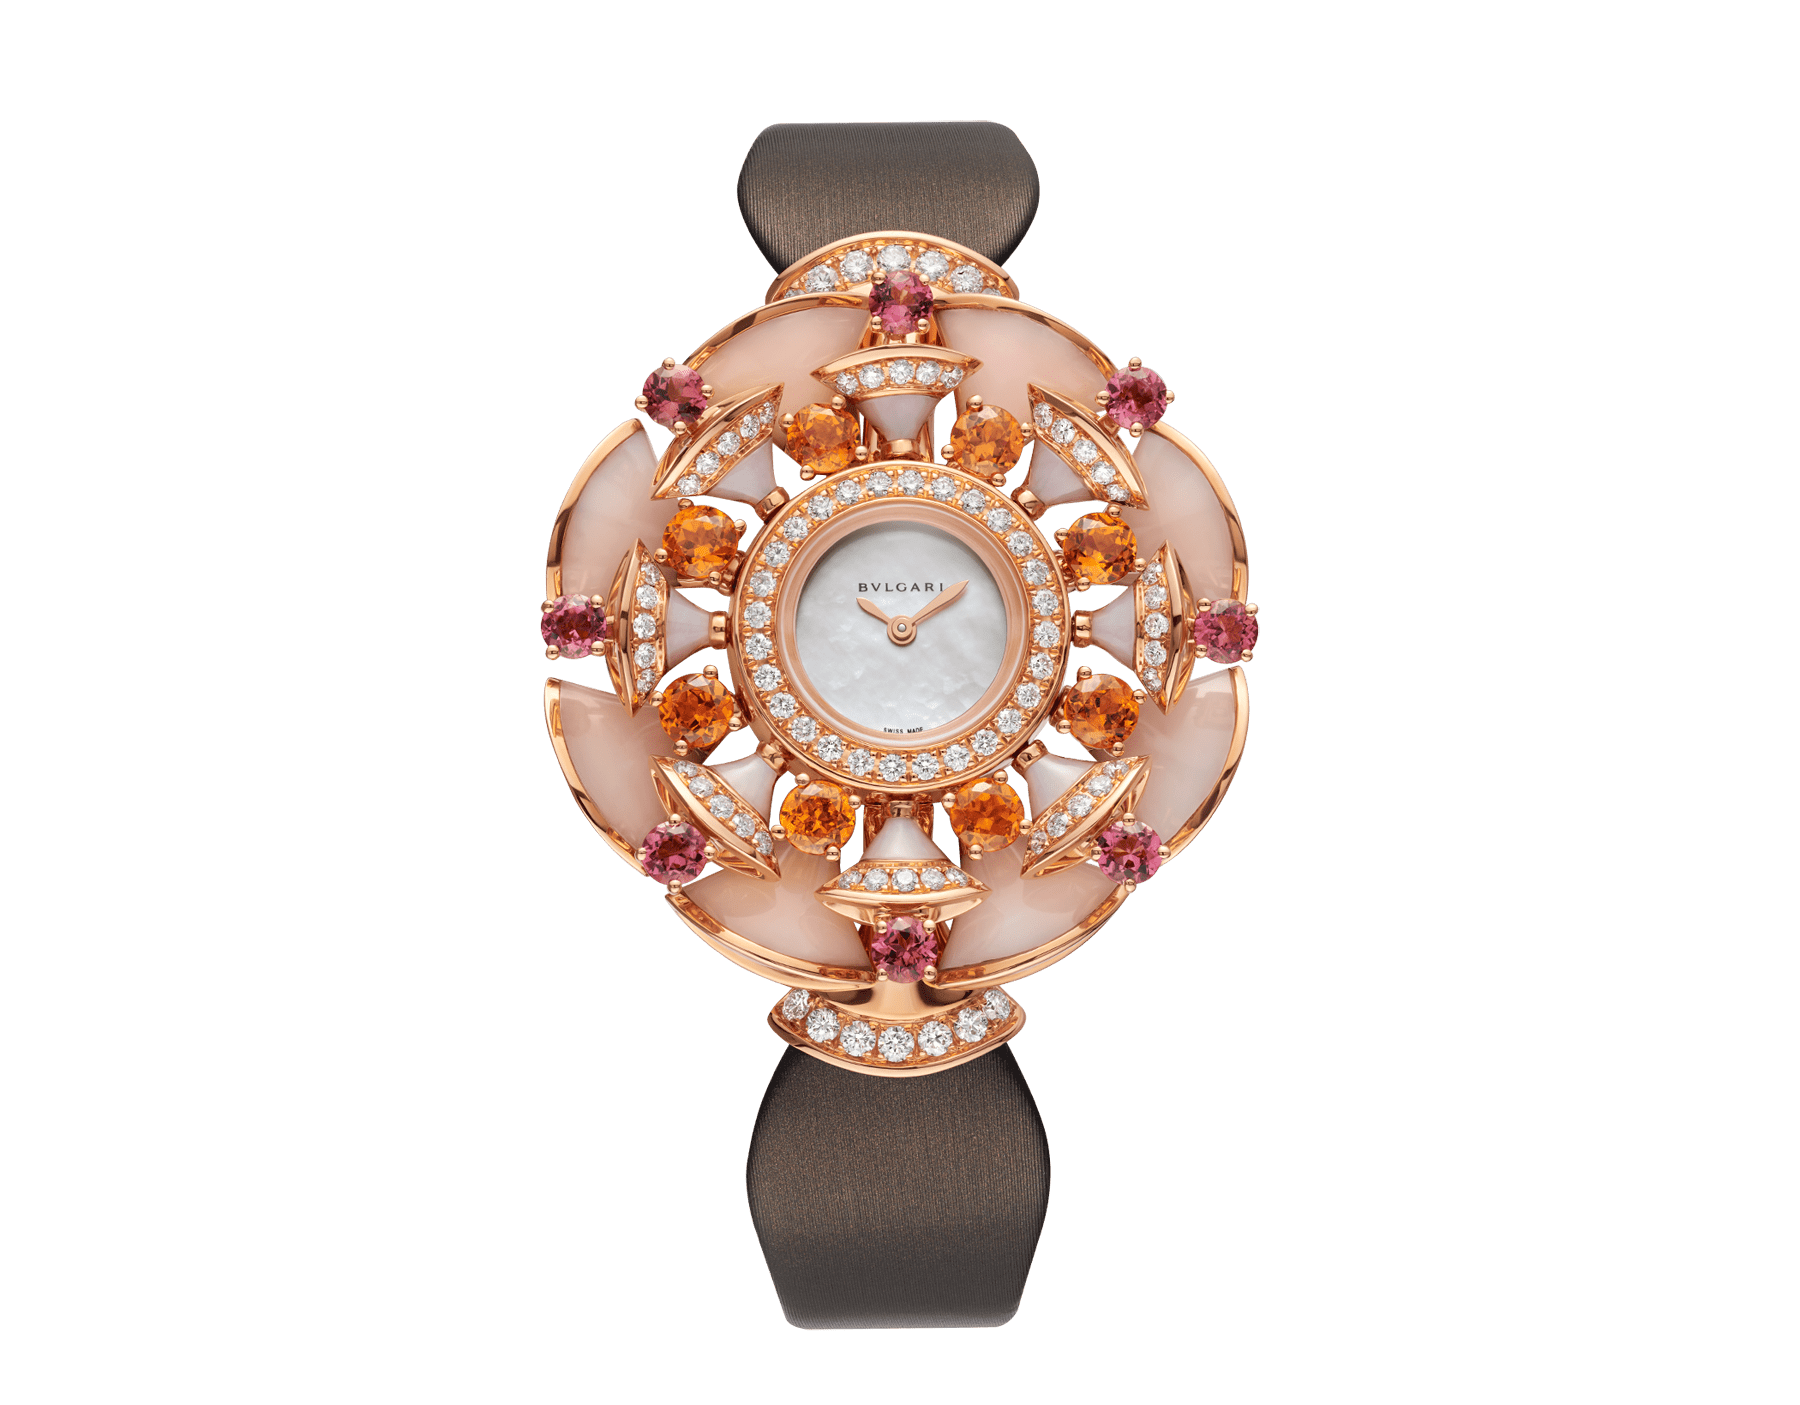 DIVAS' DREAM watch with 18 kt rose gold case set with brilliant-cut diamonds, mandarin garnets, tourmalines and pink opal elements, white mother-of-pearl dial and taupe satin bracelet 102420 image 1